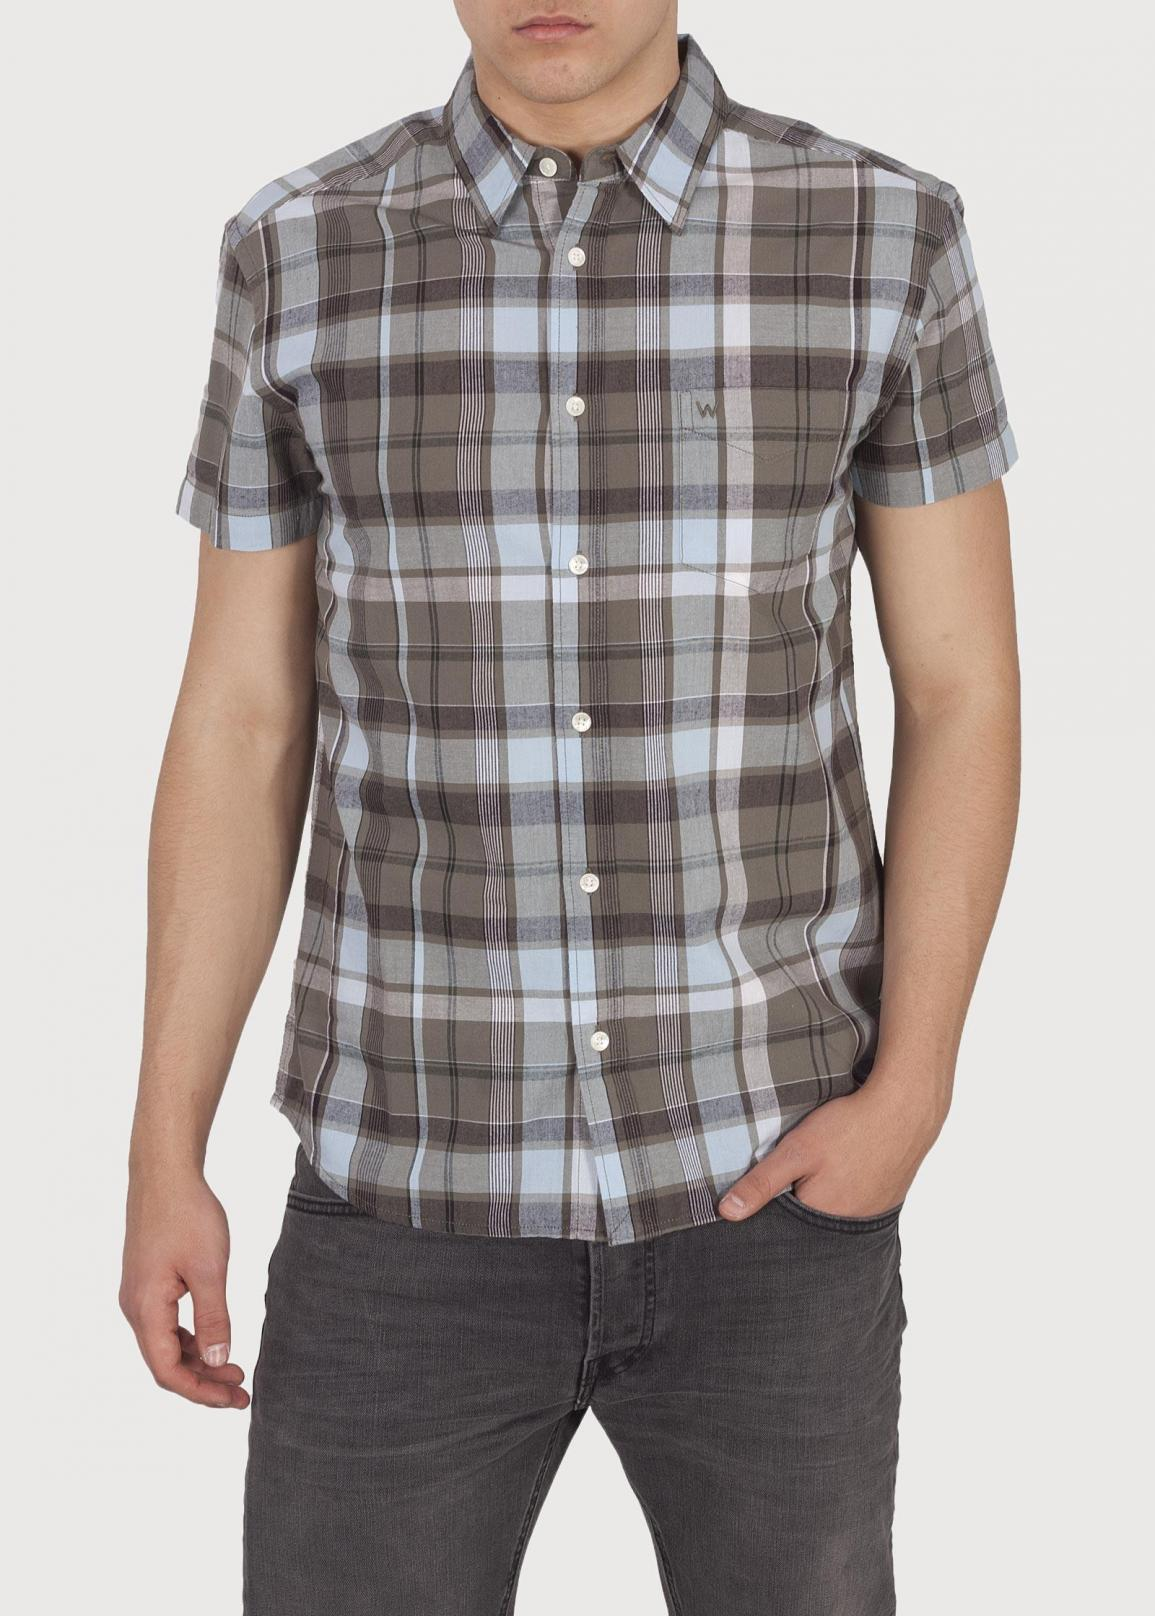 Wrangler® Short Sleeve 1 Pocket Shirt - Dusty Olive